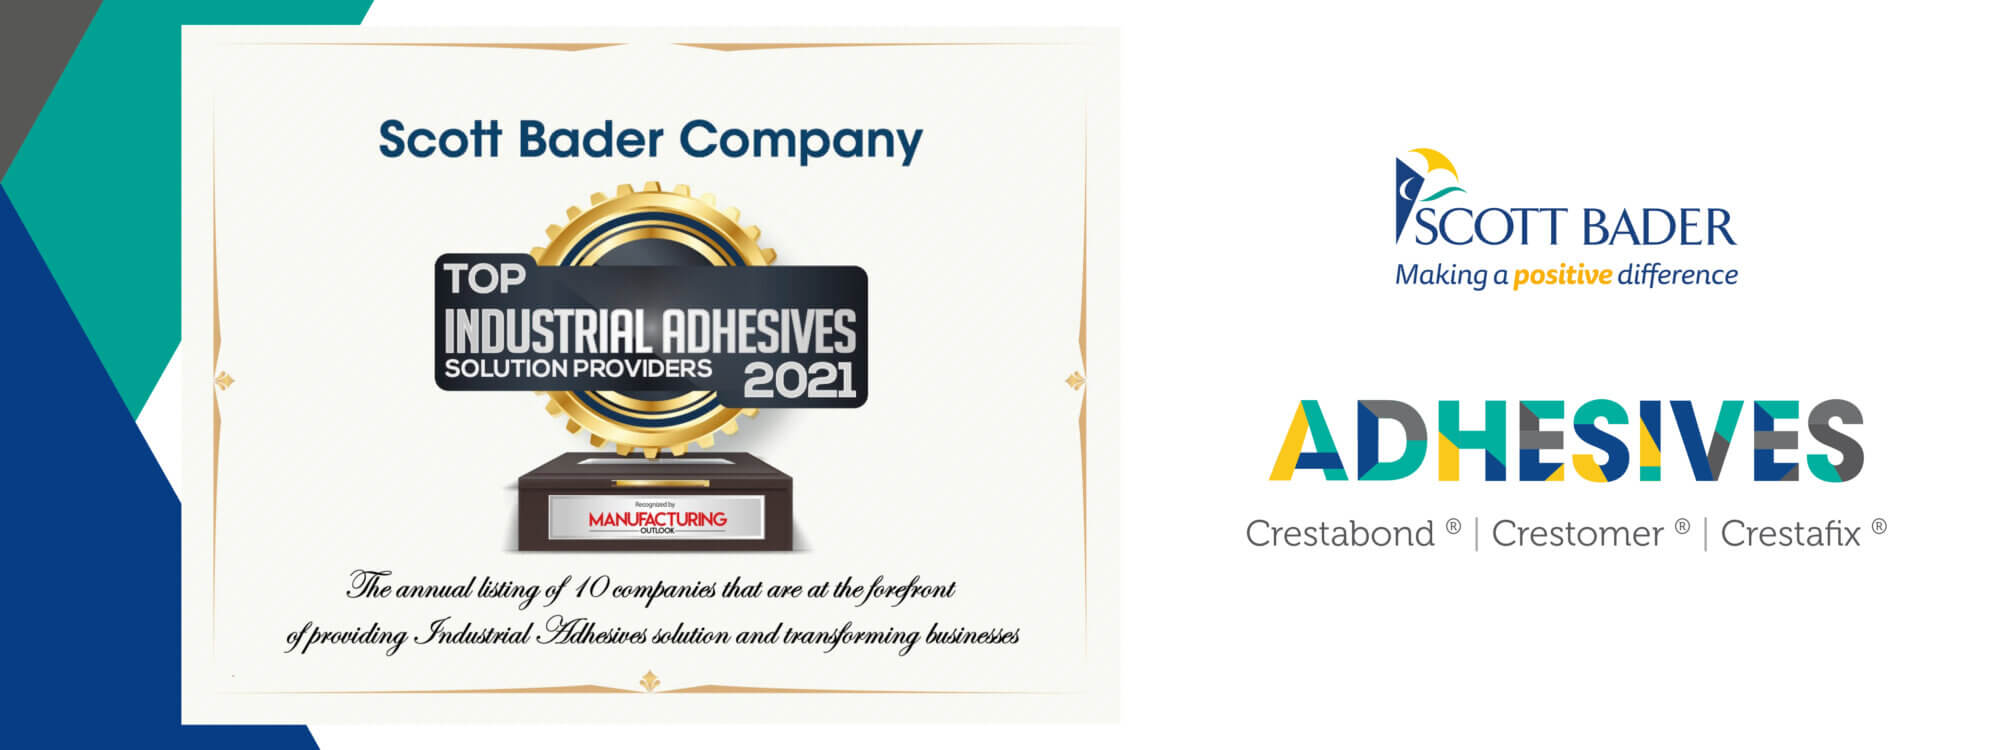 Scott Bader named a Top 10 Industrial Adhesives Solutions Provider